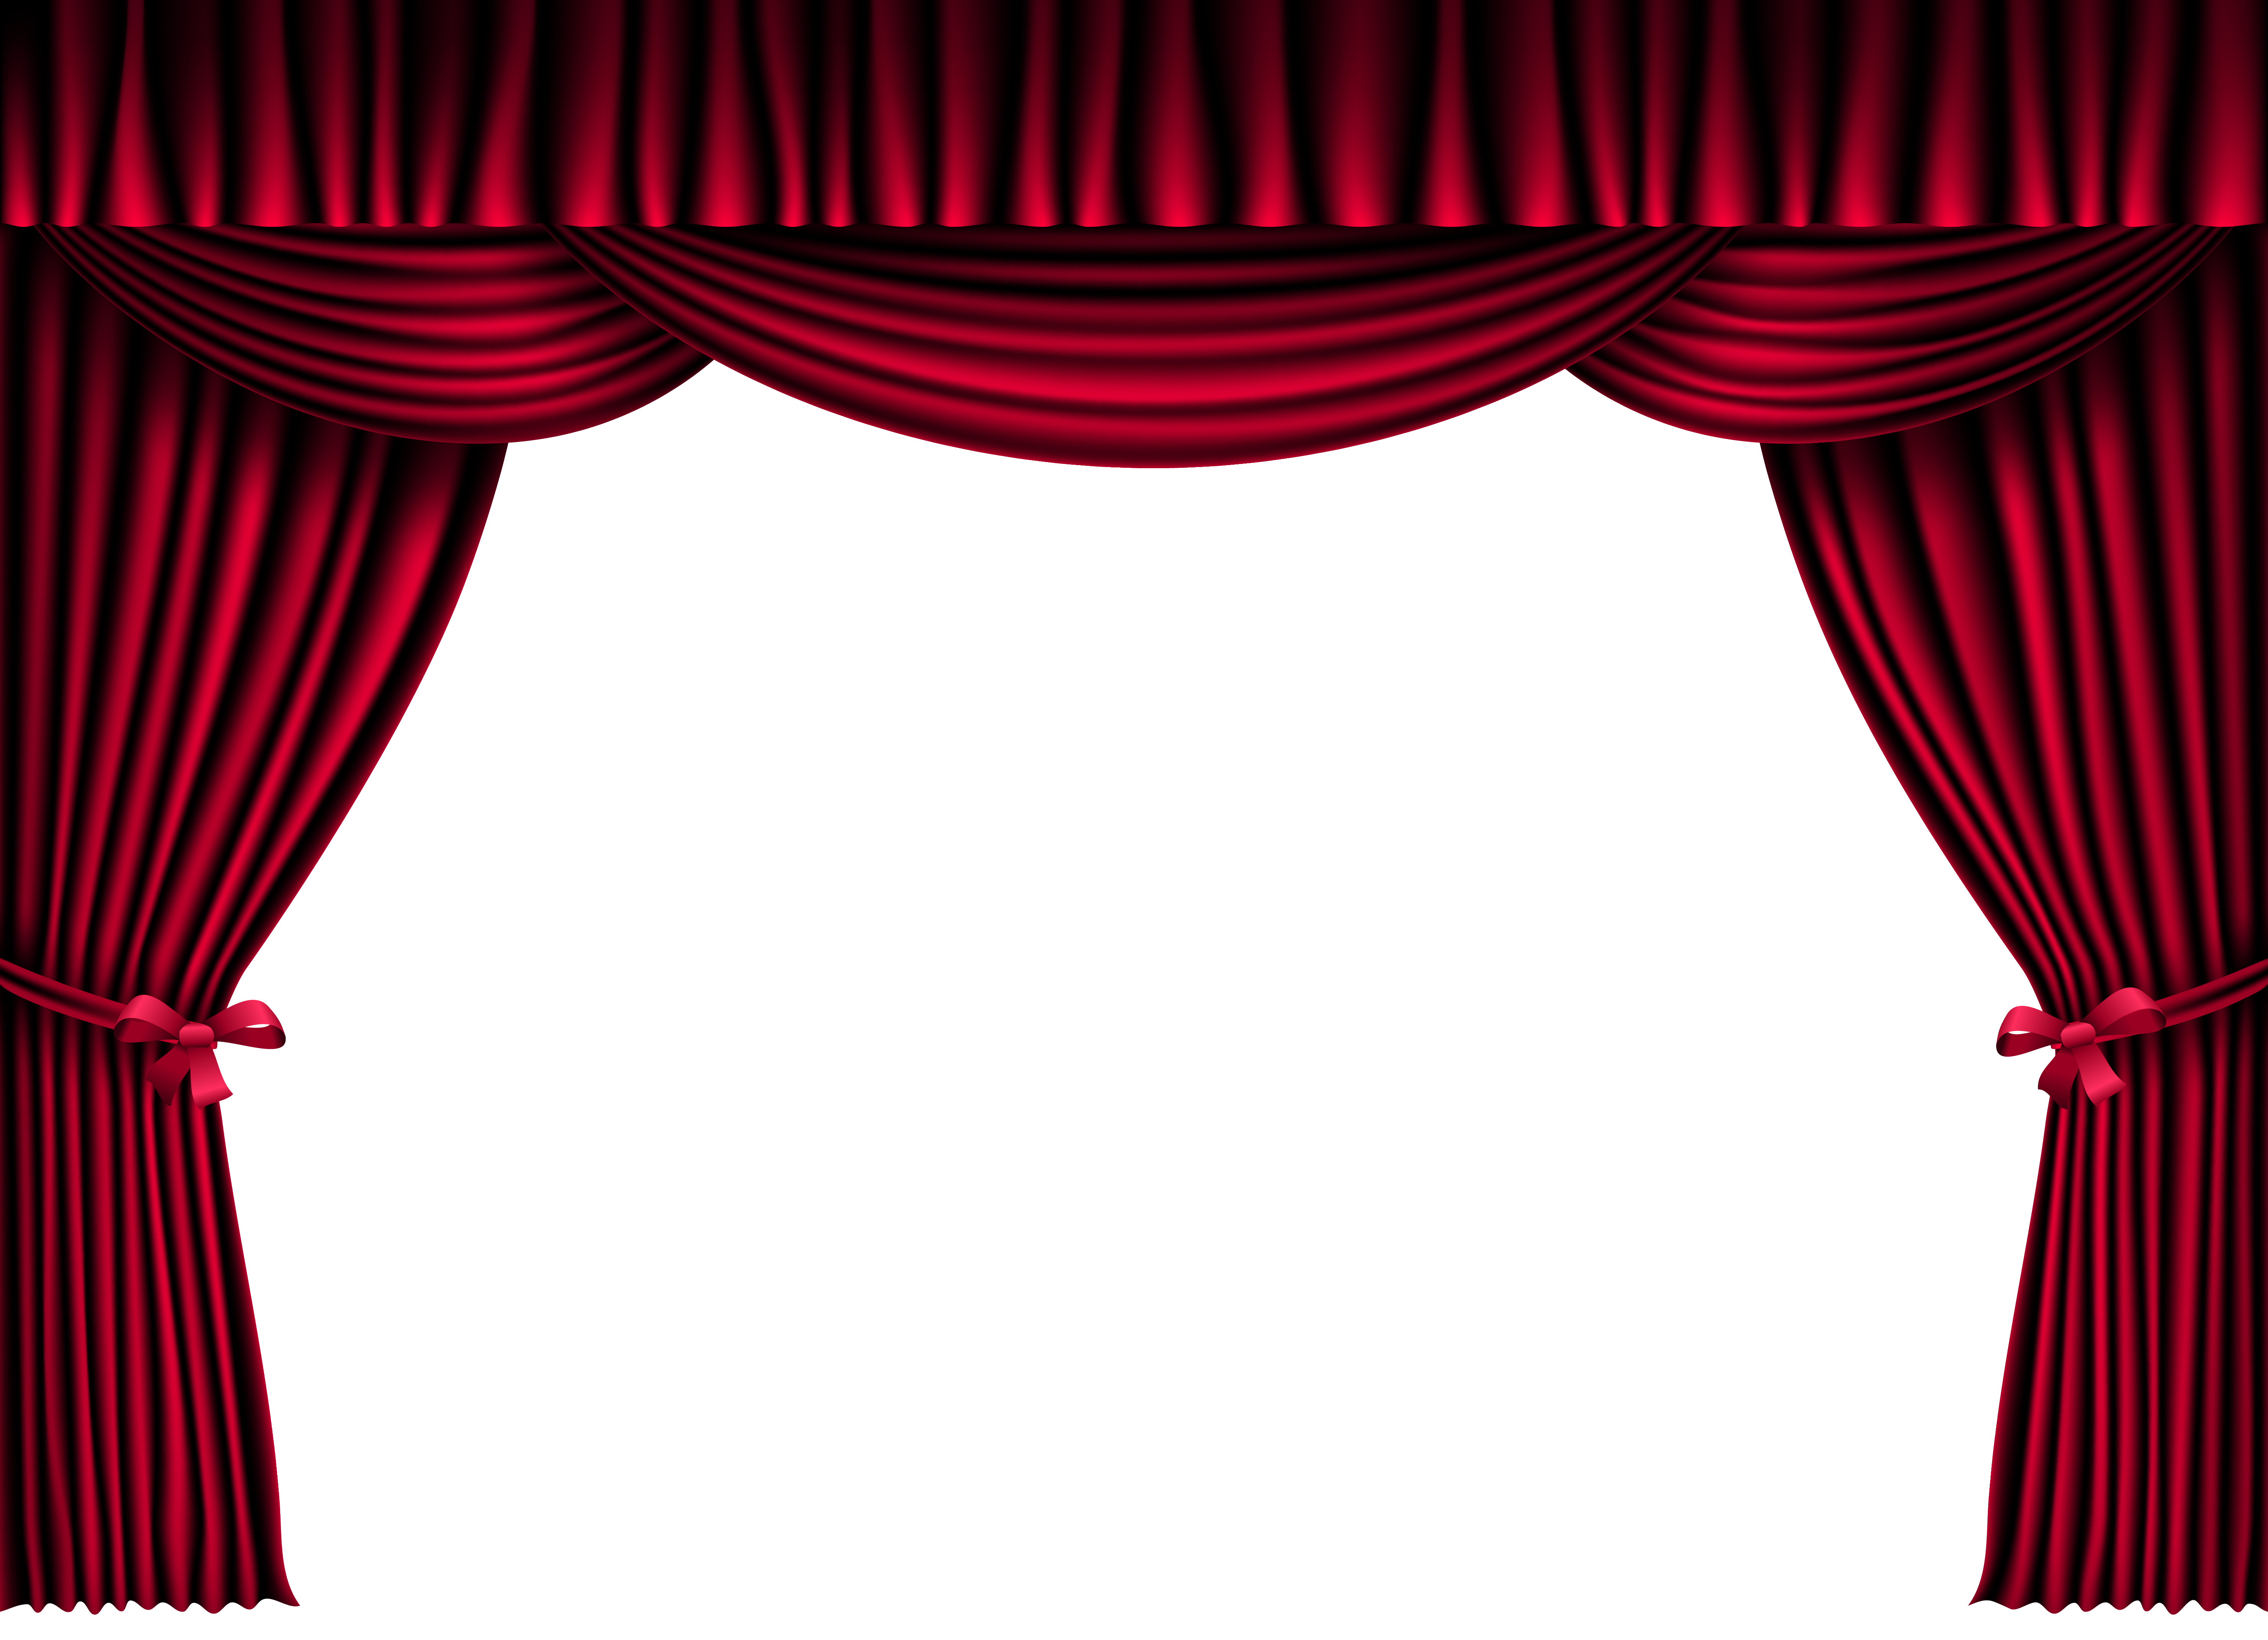 Red Curtains Png Clipart Image Gallery Yopriceville High Quality Images And Transparent Png Free Clipart Red Curtains Curtains High Quality Images